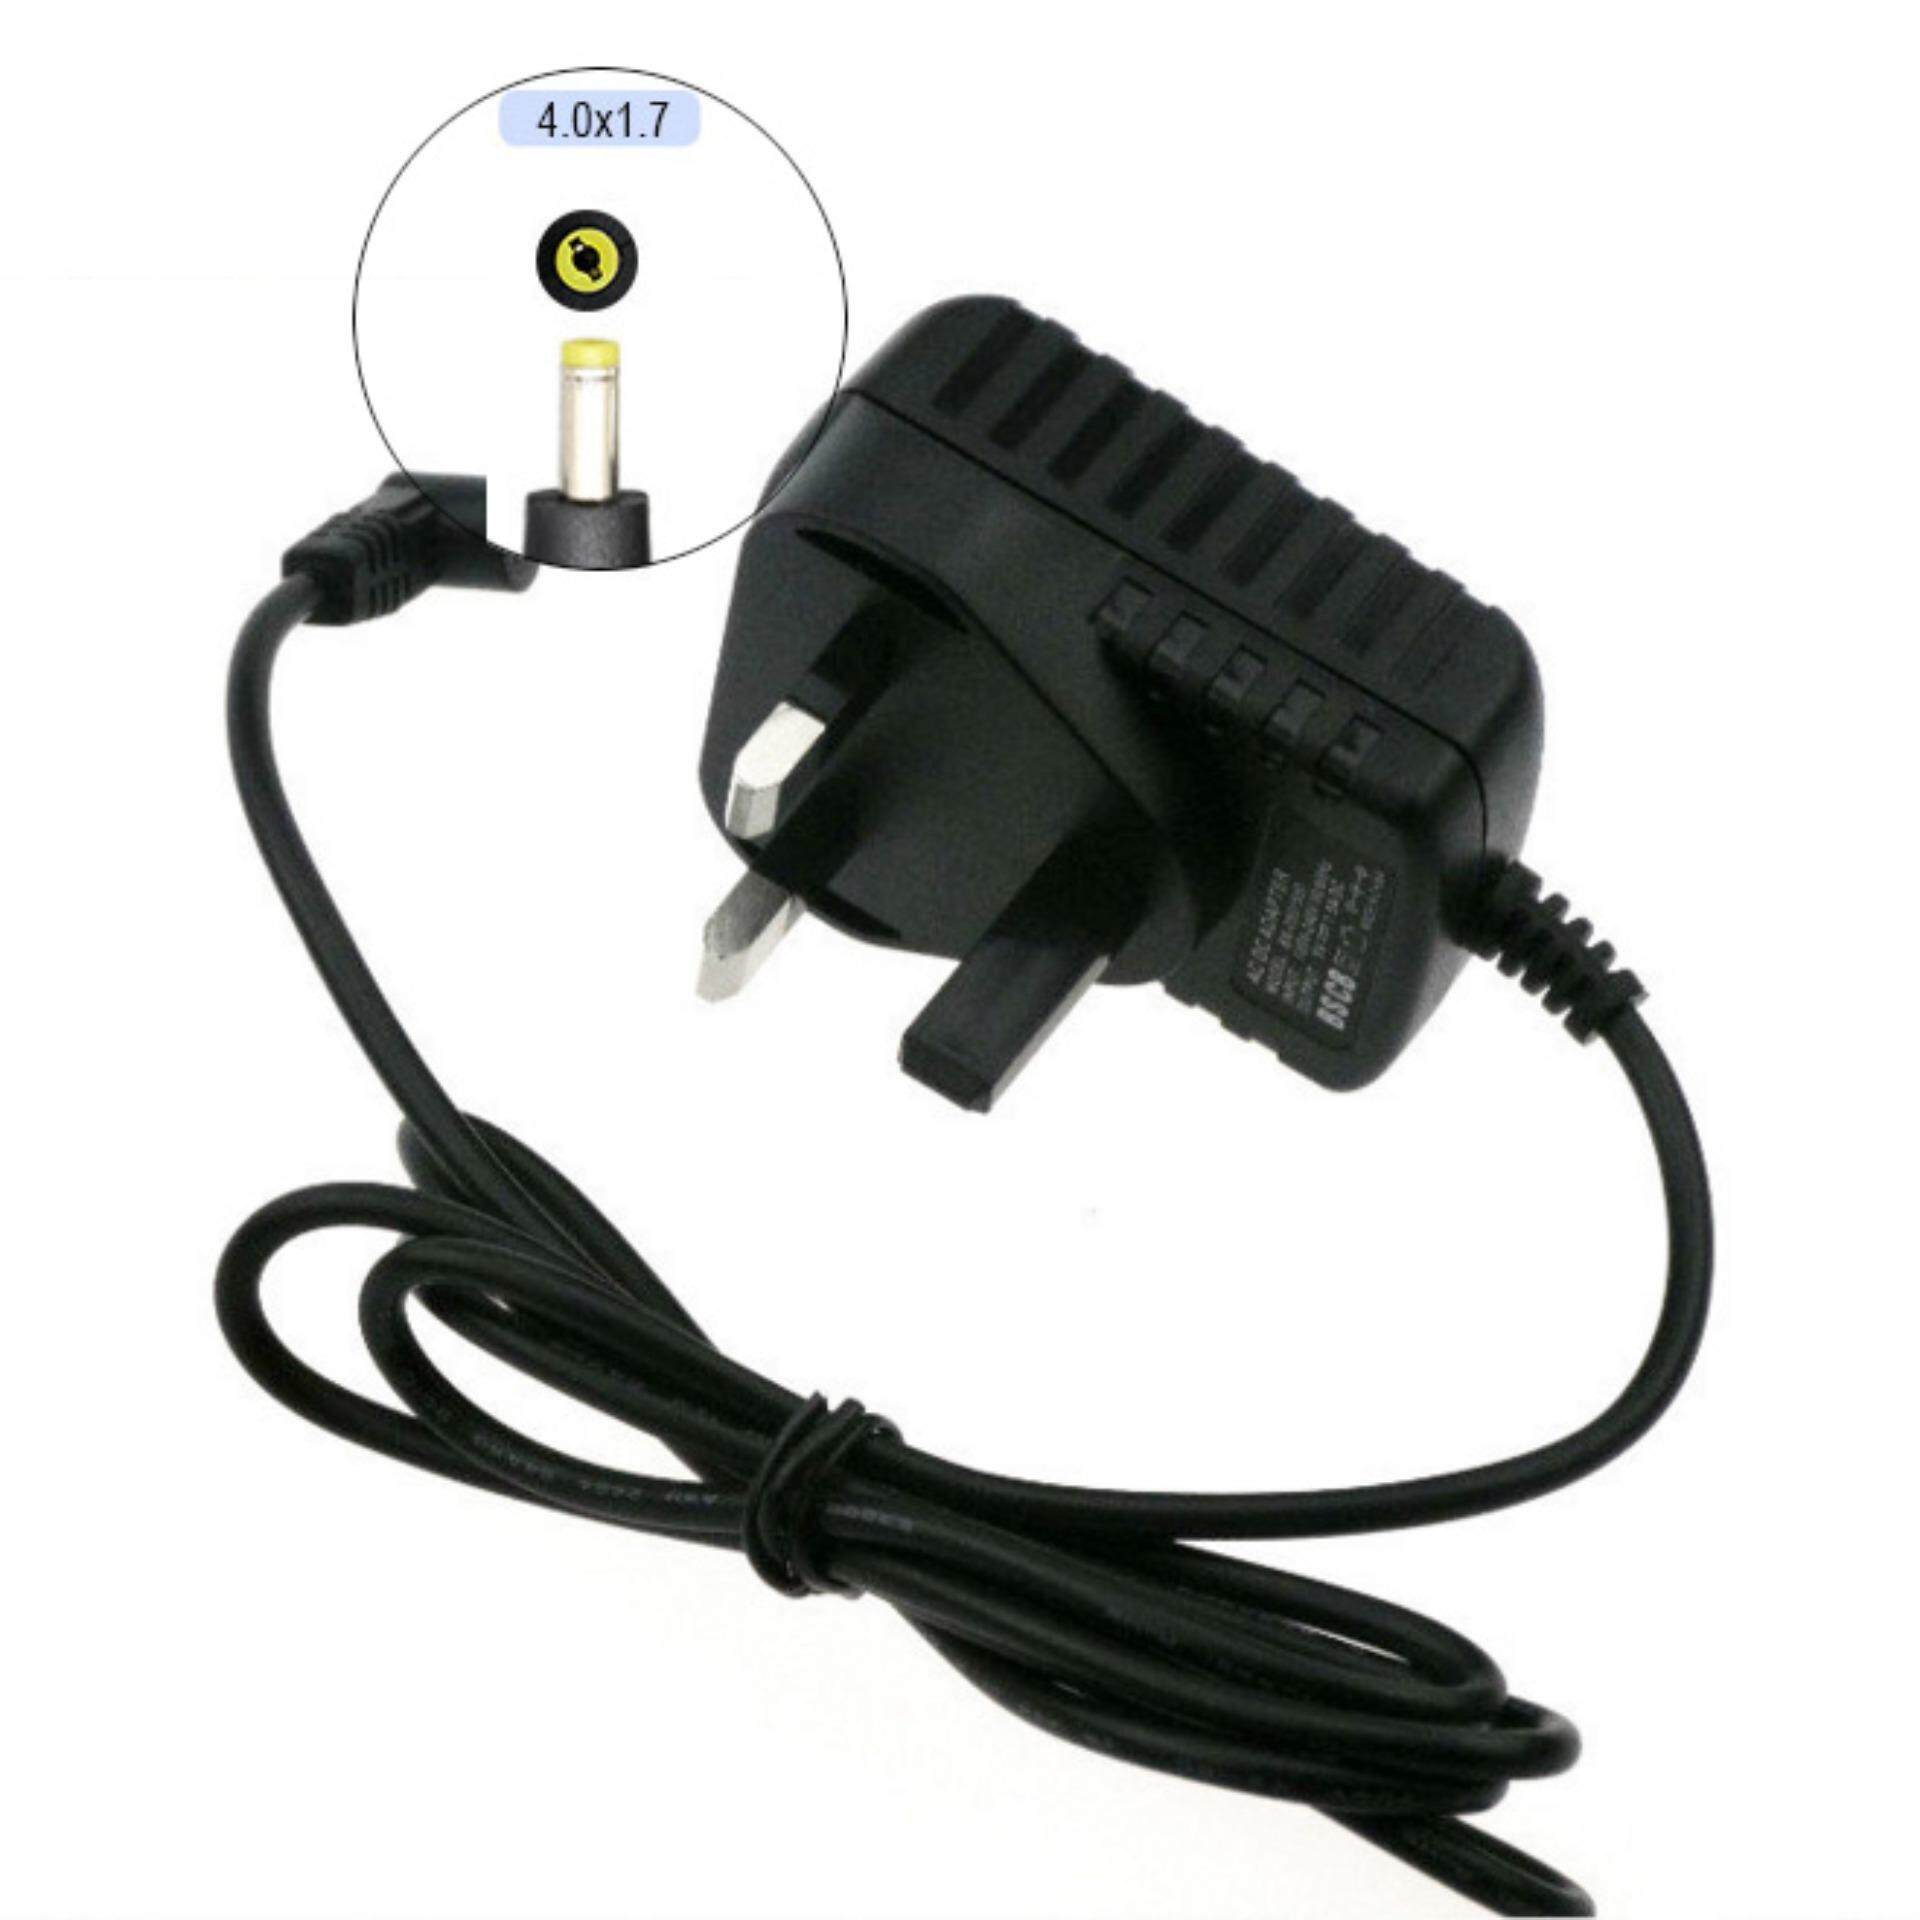 4.0*1.7mm Ac Adapter 5V 1A 3 Pin Plug Type For Malaysia